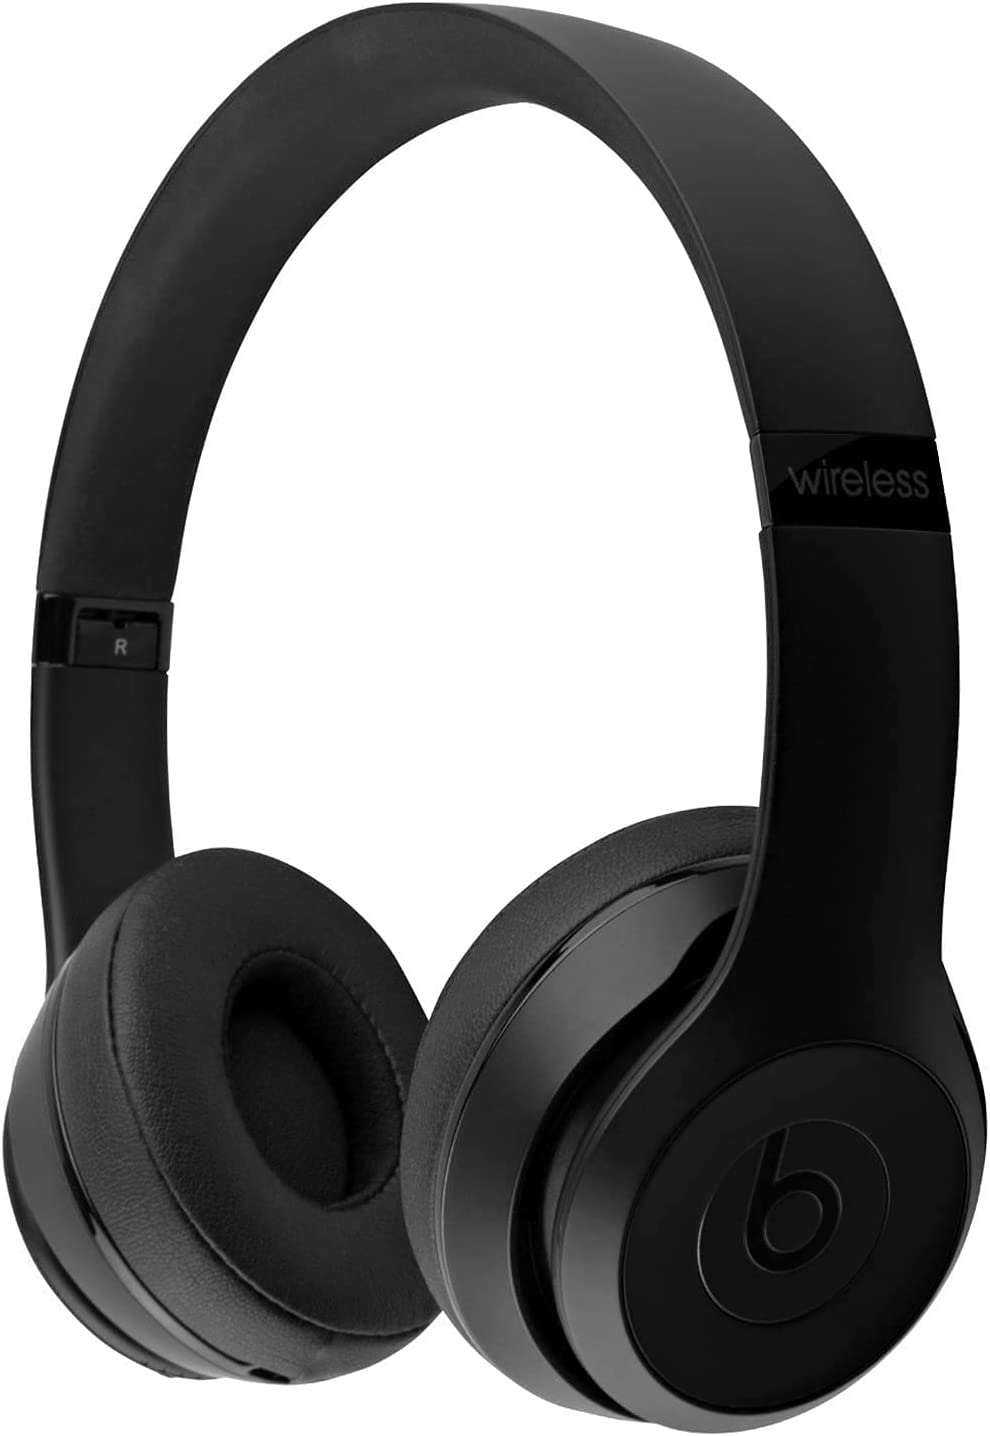 Beats by Dr. Dre - Headphones On-Ear Wireless Max 47% OFF 40% OFF Cheap Sale Solo3 Blac